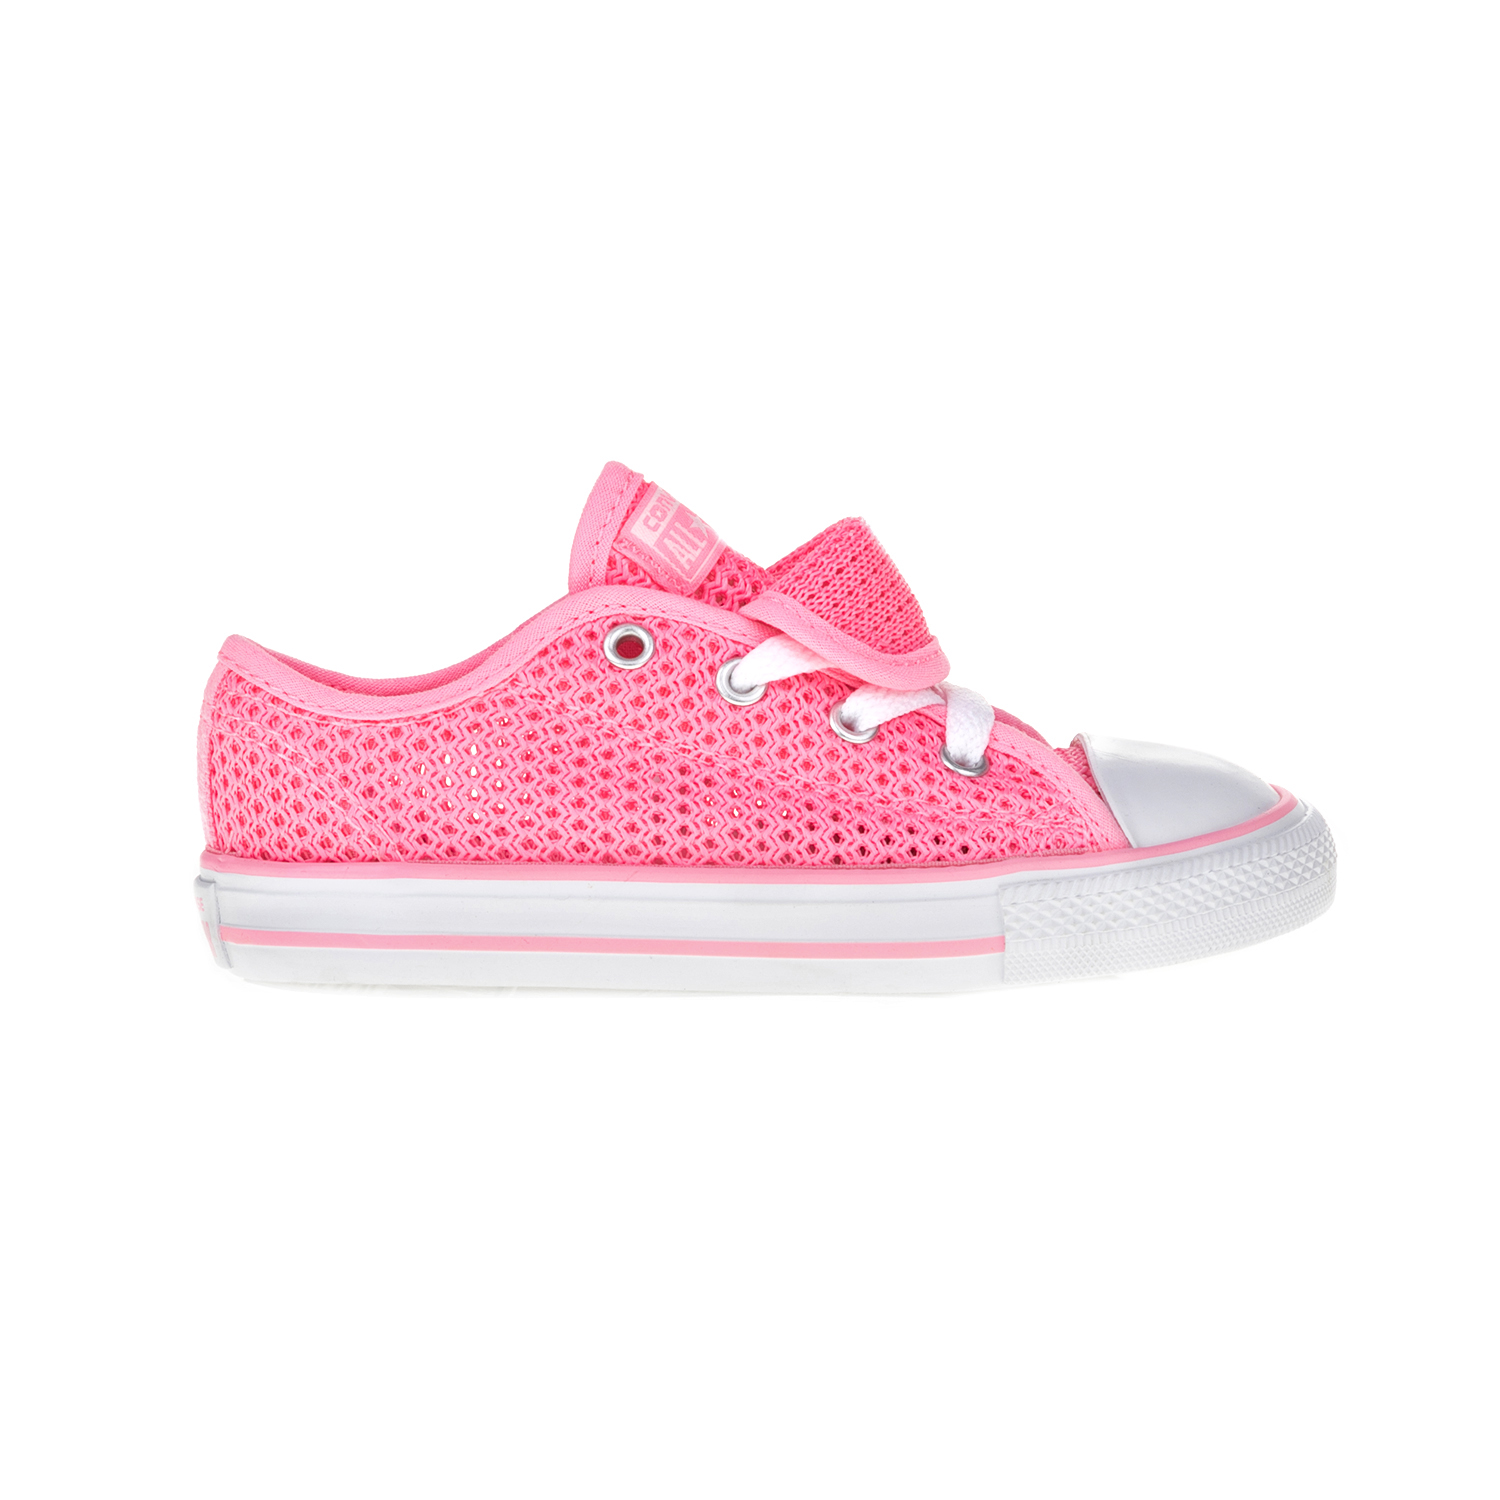 -48% Collective Online CONVERSE – Βρεφικά παπούτσια Chuck Taylor All Star  Double T ροζ 164492e03f5